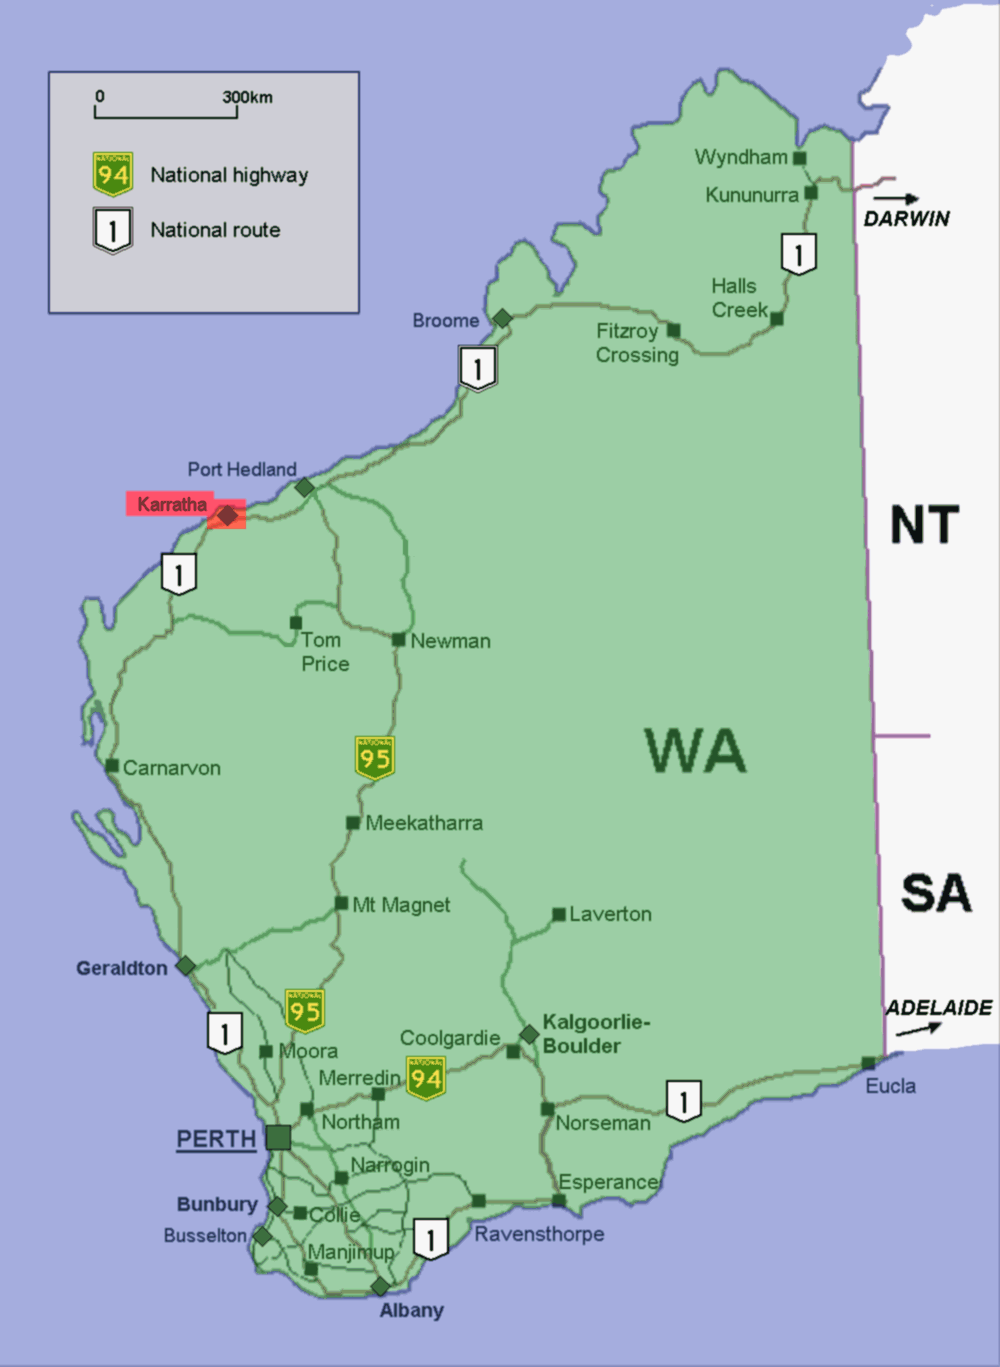 Map Of Western Australia With Cities.Newman Karratha And Perth Western Australia Australia Map